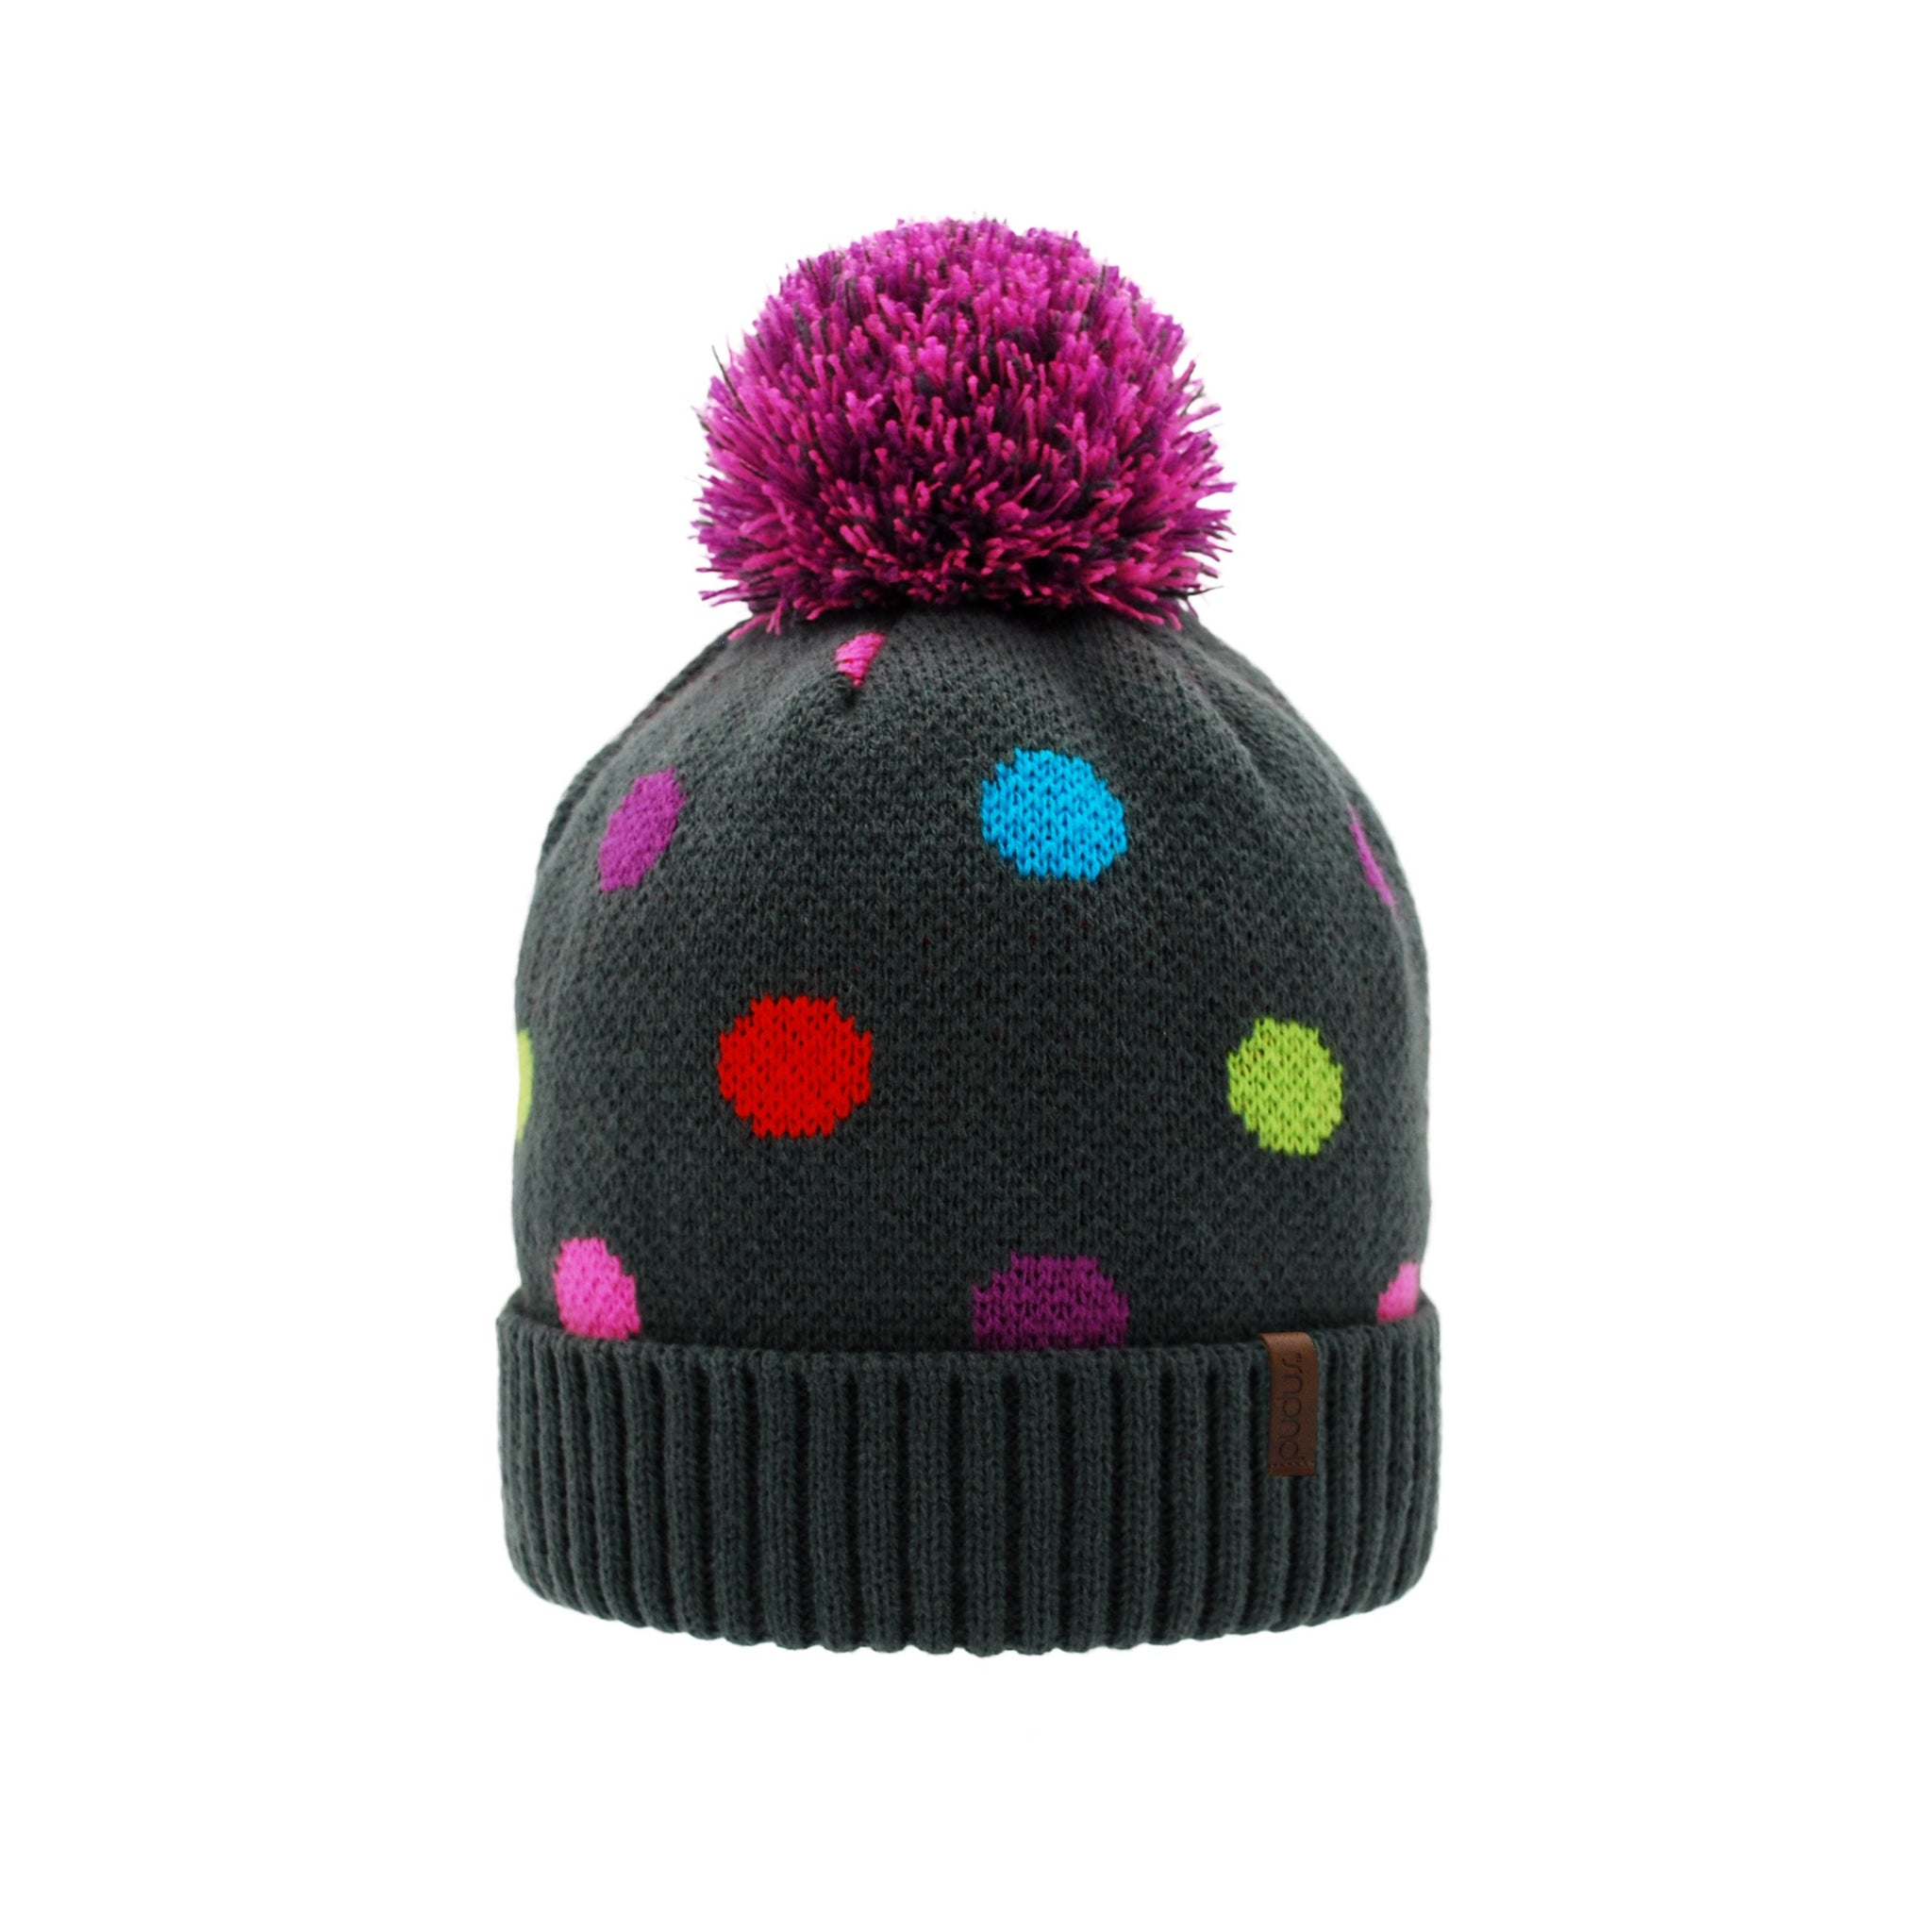 Beanie Winter Hat | Polka Dot Multi